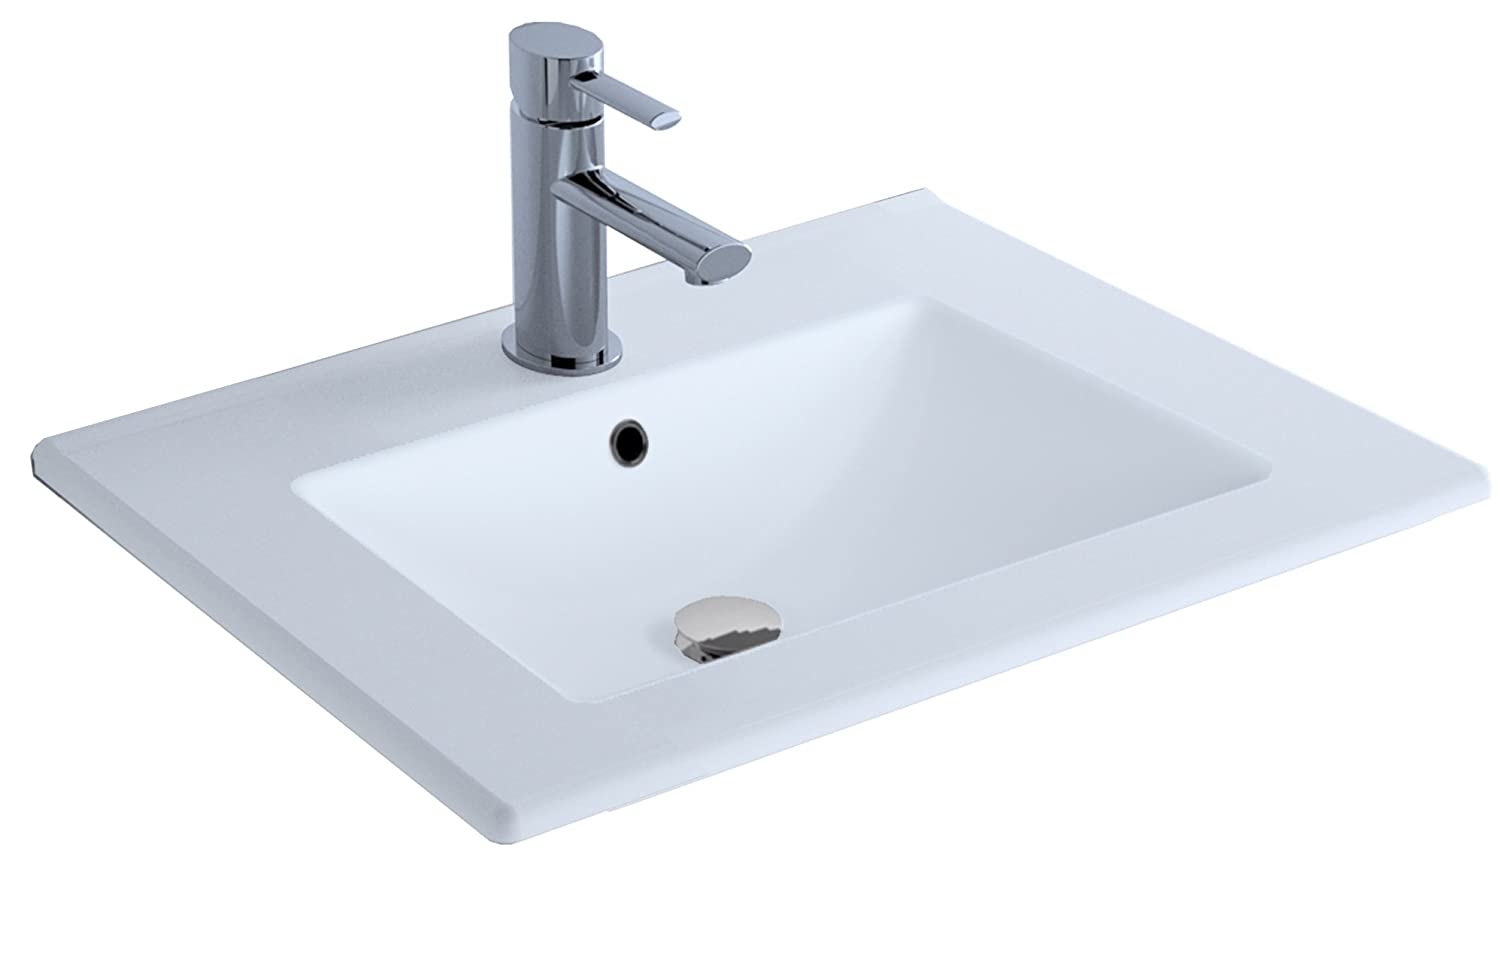 Cygnus Bath - Lavabo in ceramica di 70 cm, ultrapiatto 1100116191